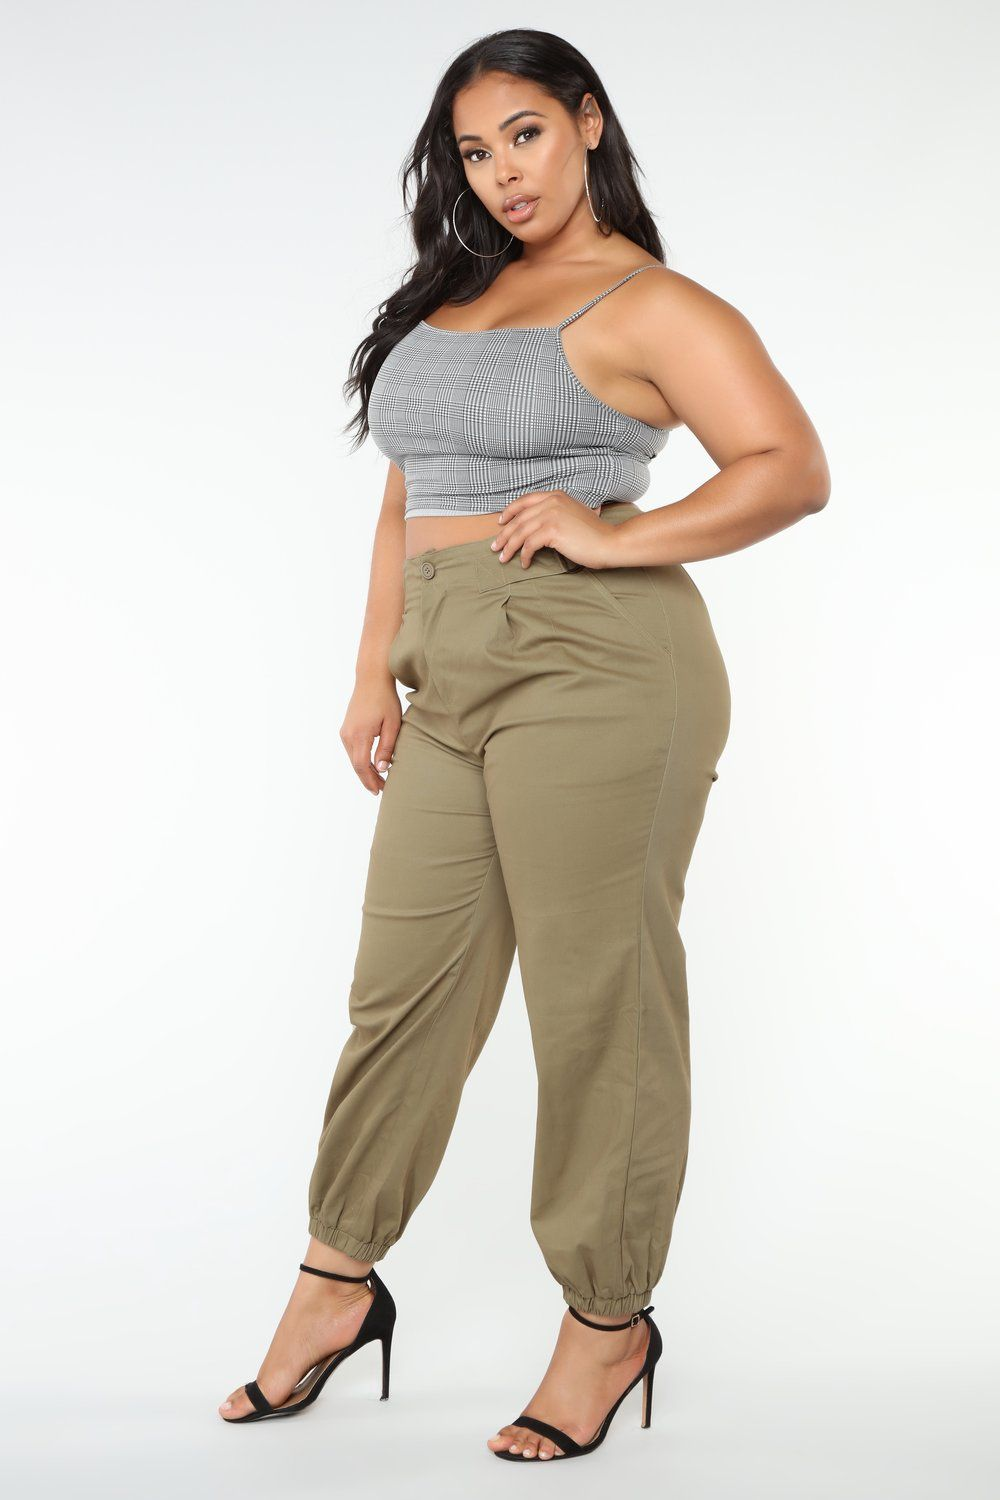 9a90e688c3bd8 Do It Myself Cargo Pants - Olive